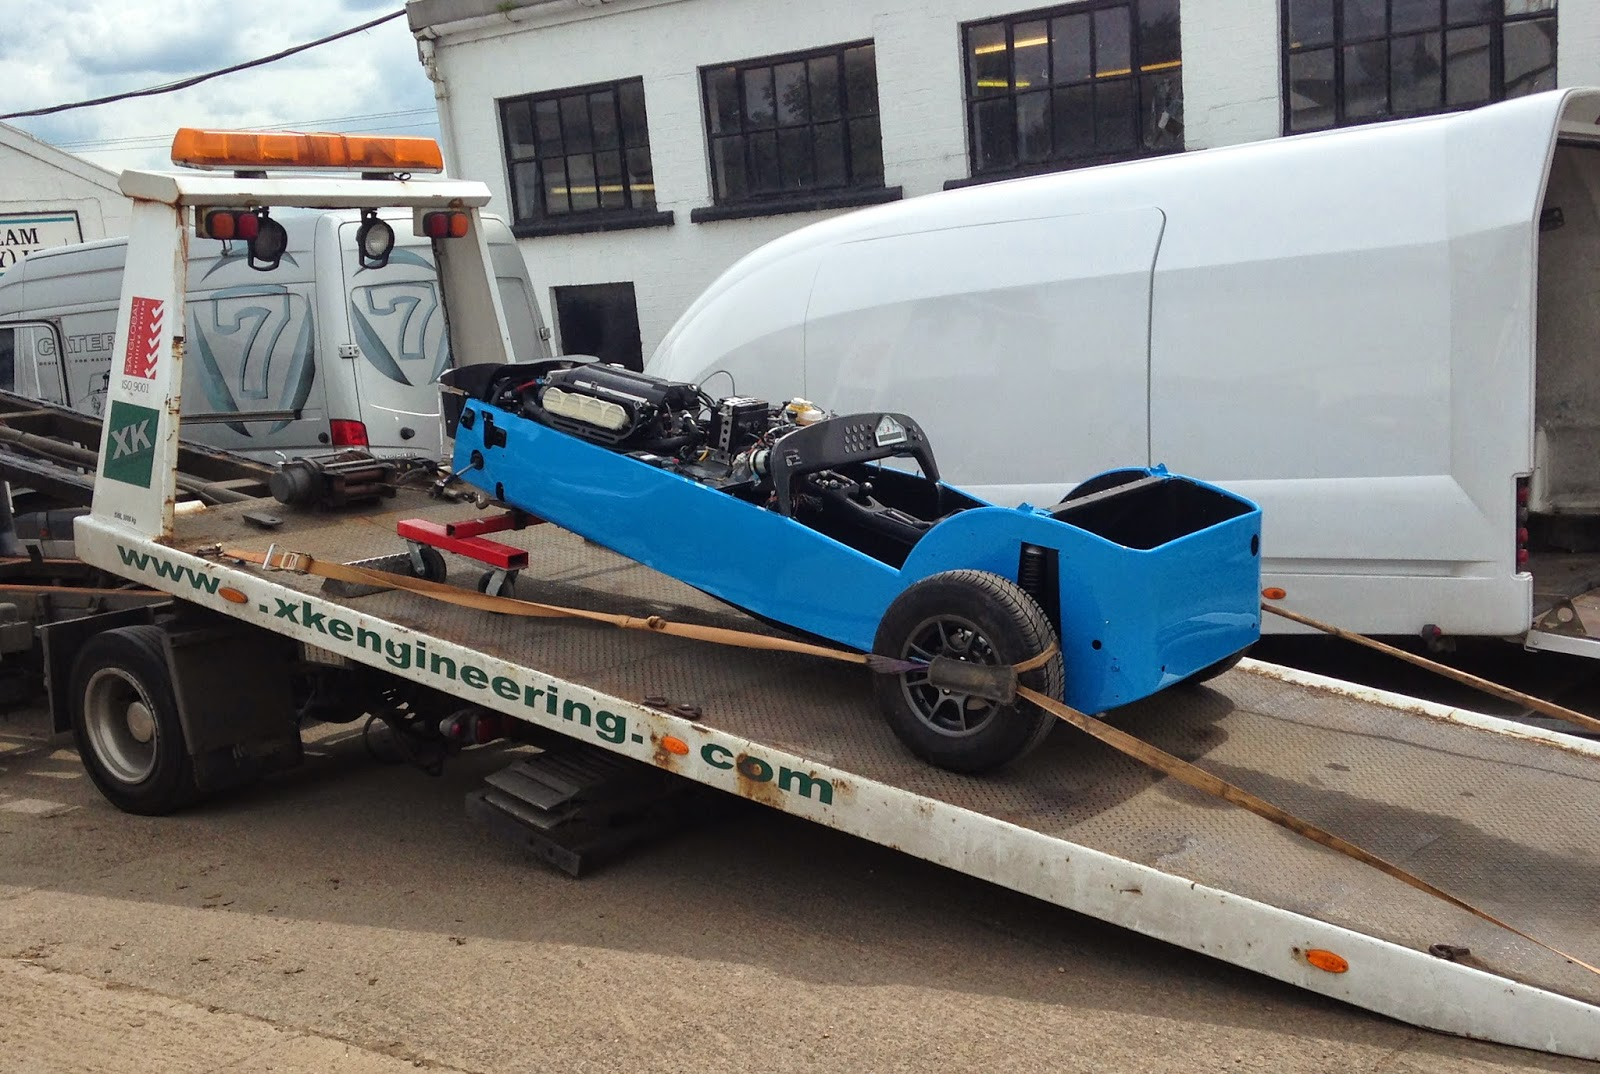 My Caterham R500 on XK engineering flat bed lorry after re-painting.